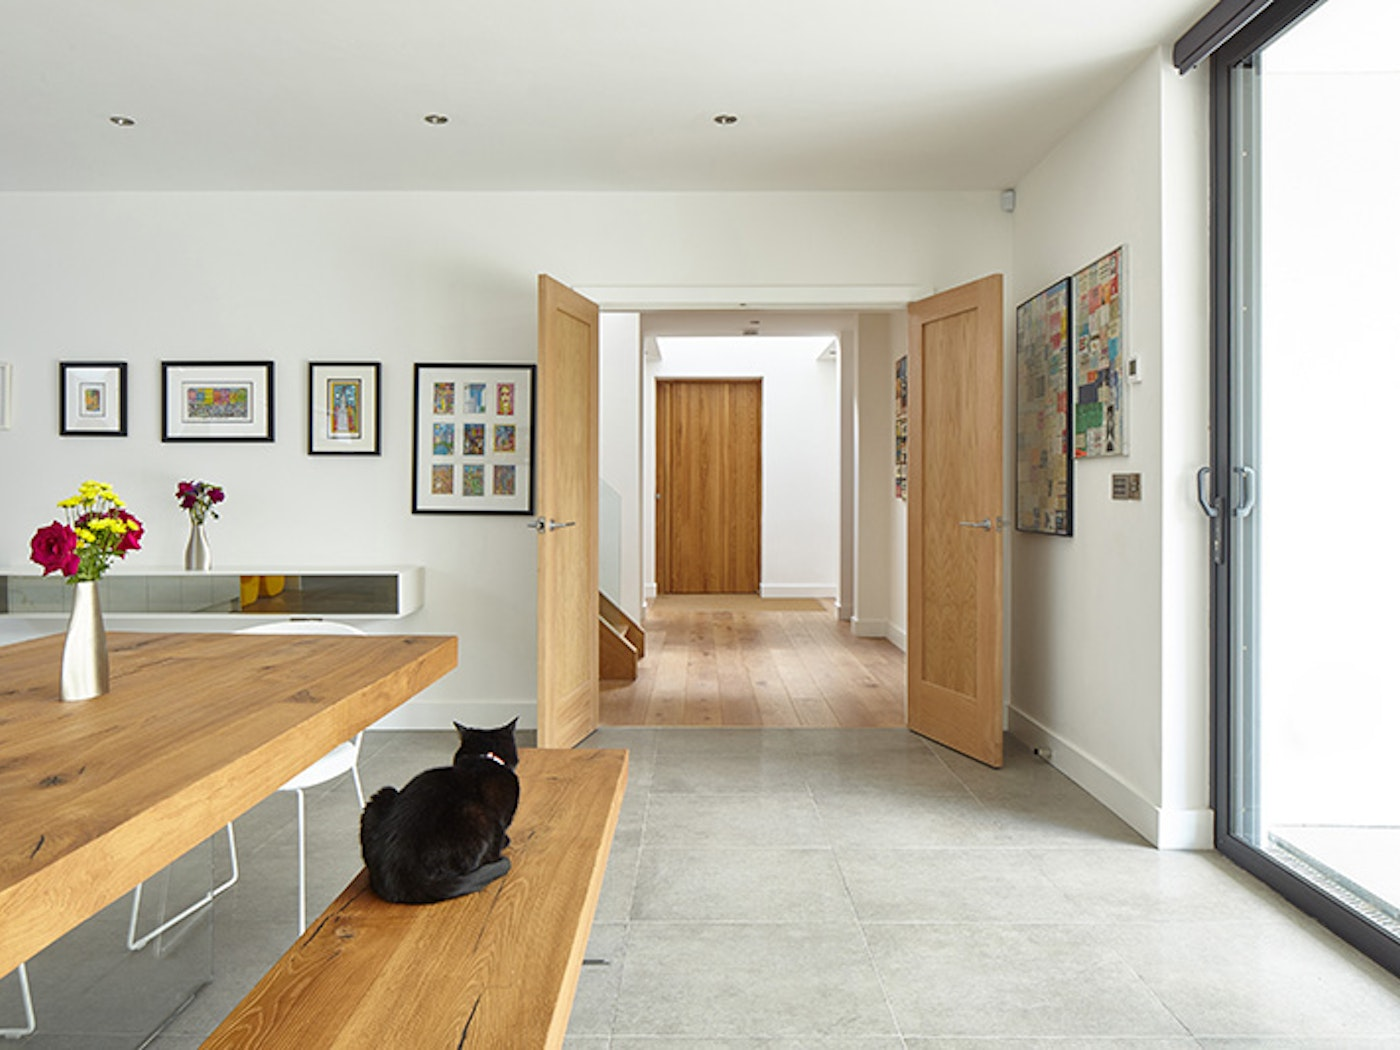 the colours in the kitchen and internal doors match the front door